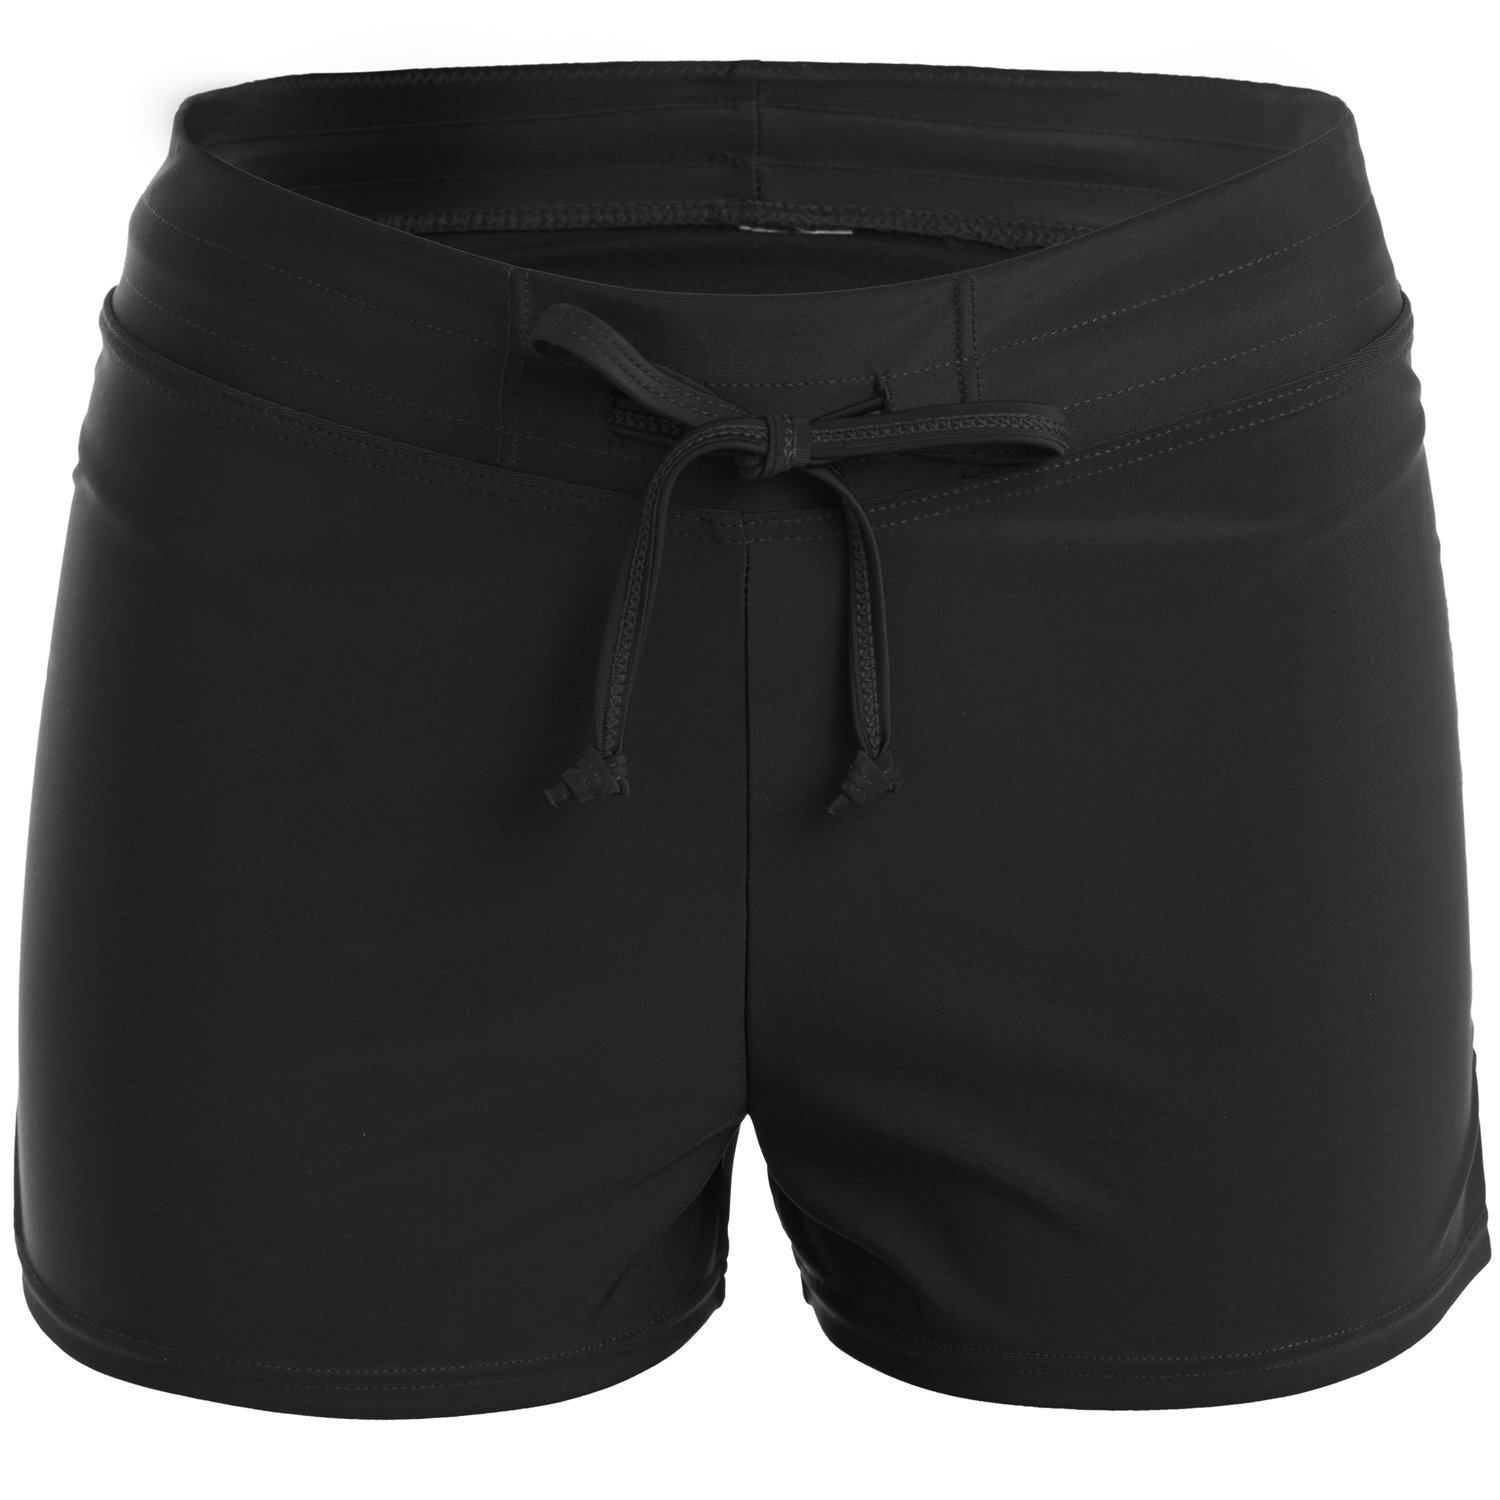 Vegatos Womens Solid Boardshorts Swimming Shorts Swim Bottoms Surfing Boyshorts Black by Vegatos (Image #1)